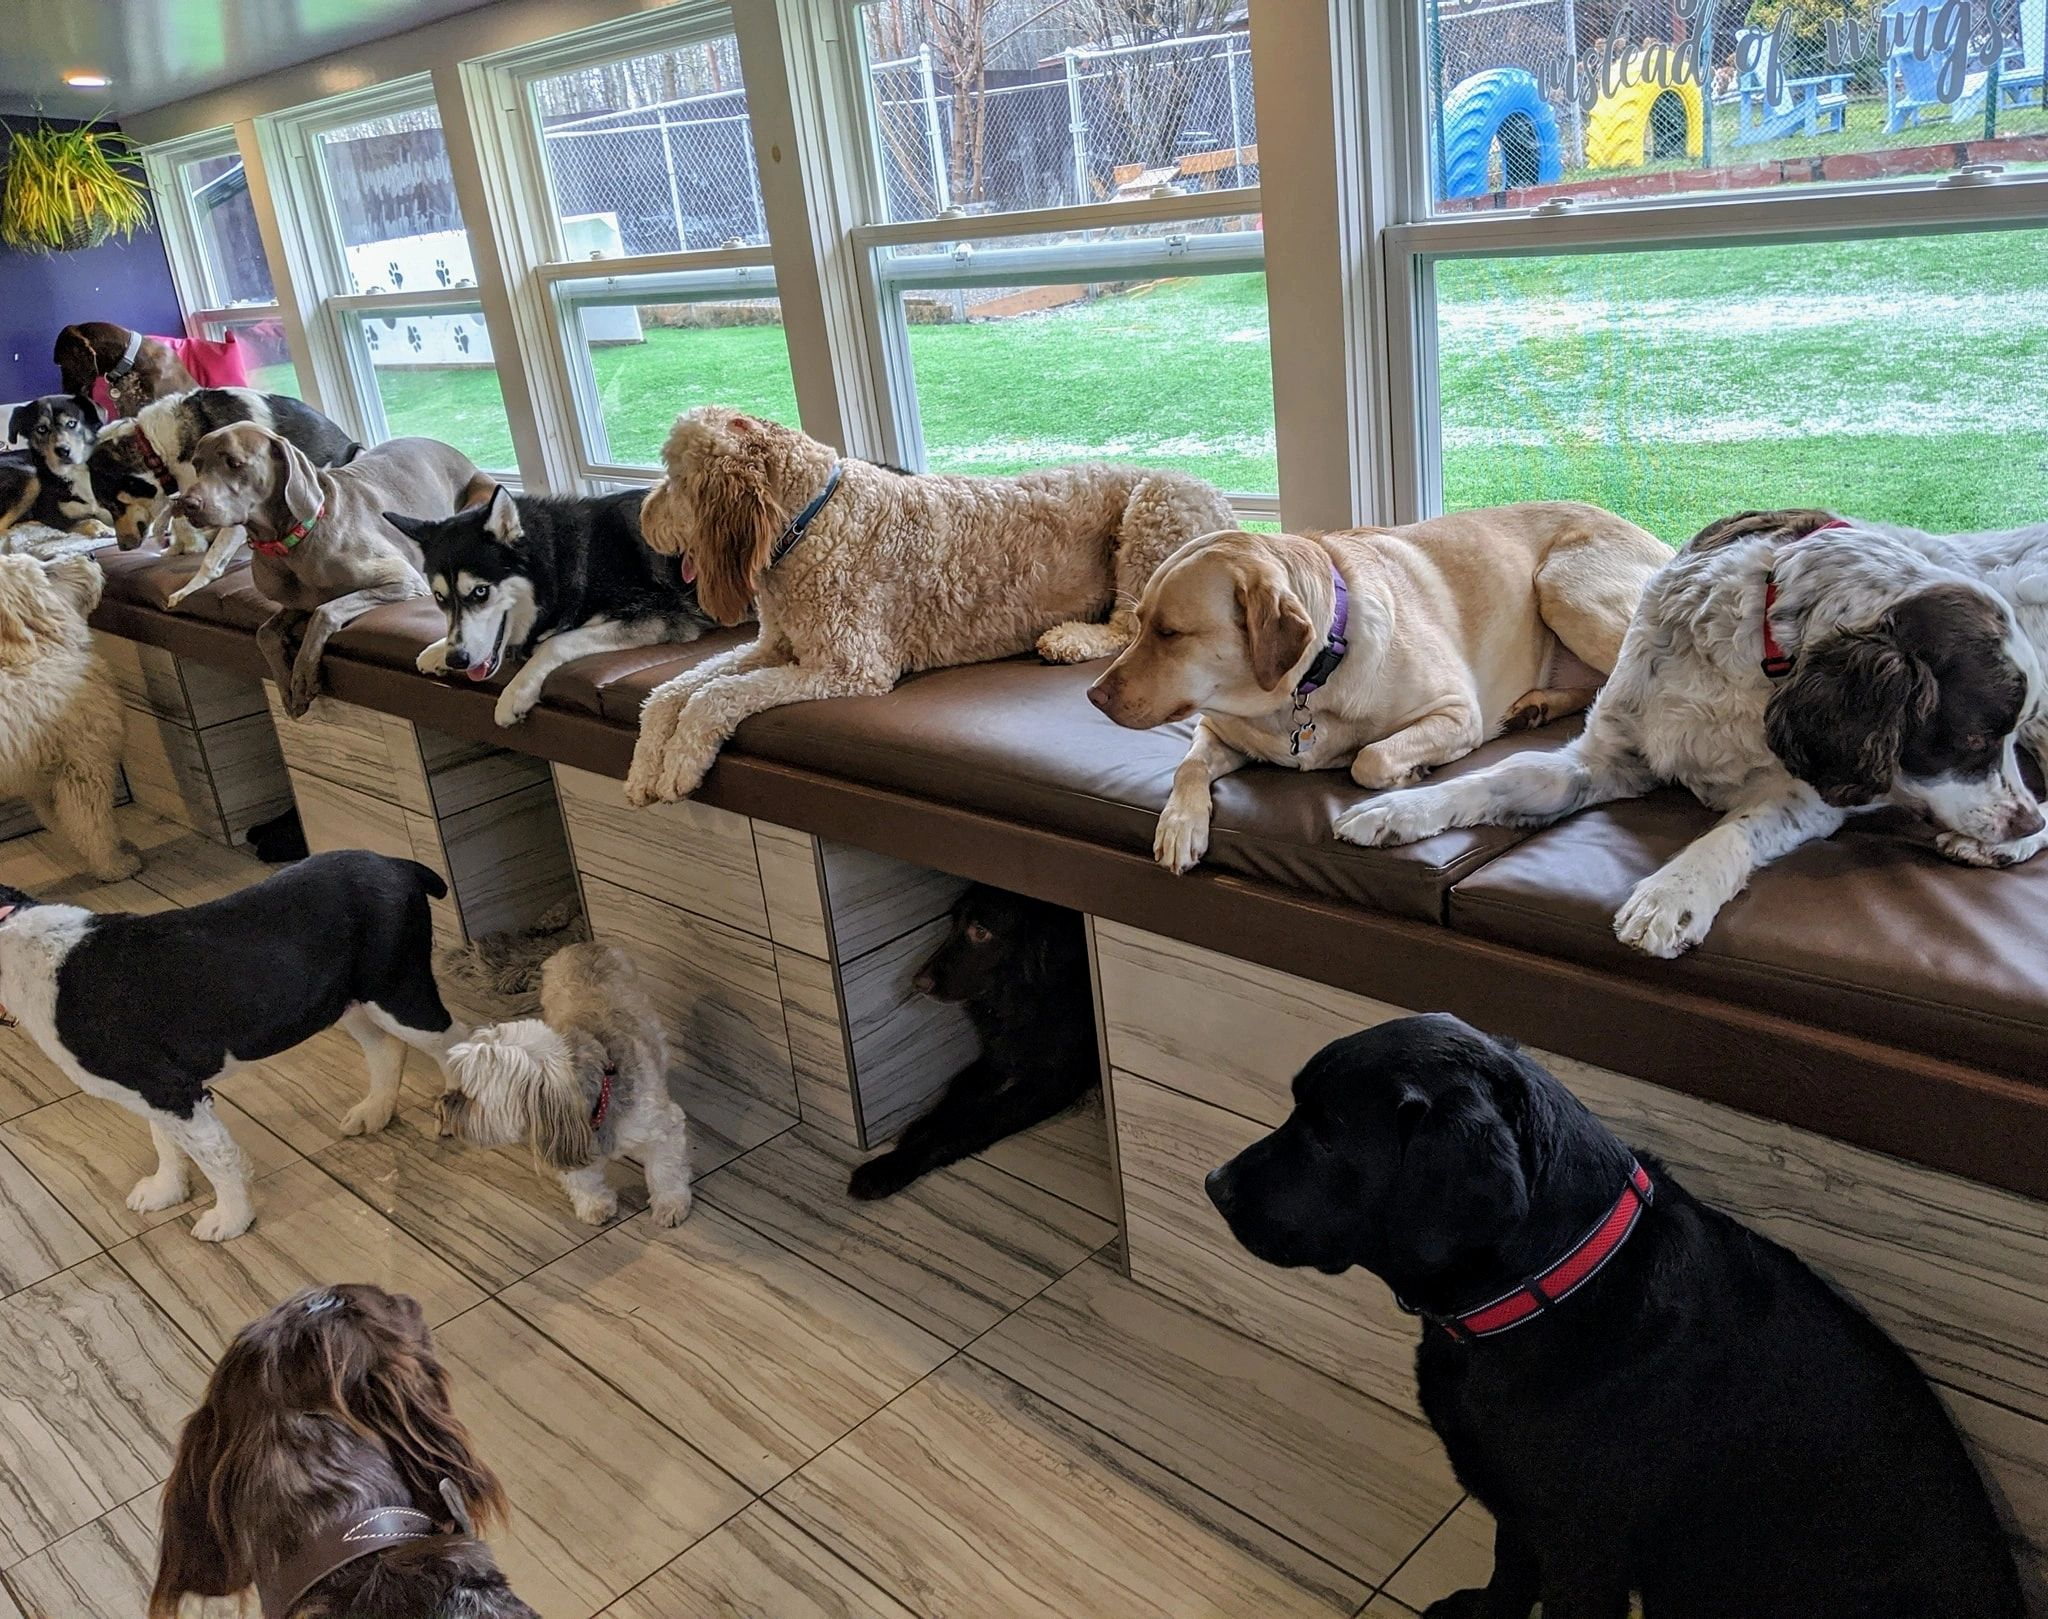 Chris's Dog Hotel No Cages Luxury Pet Resort - FuzzyButtz Grooming logo